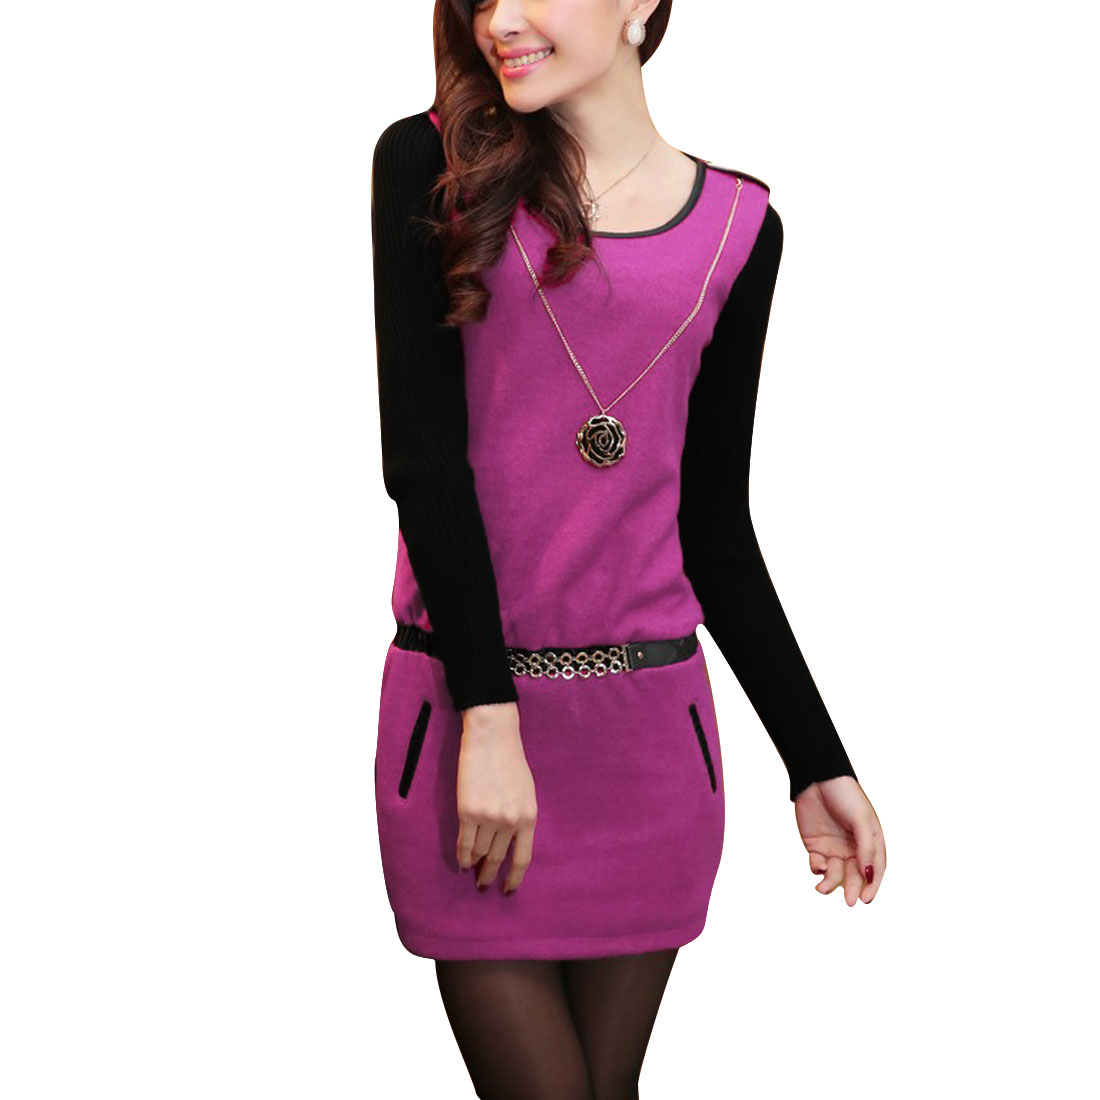 Women's Round Neck Fuchsia Stretchy Waist Pendant Decor Dress XS